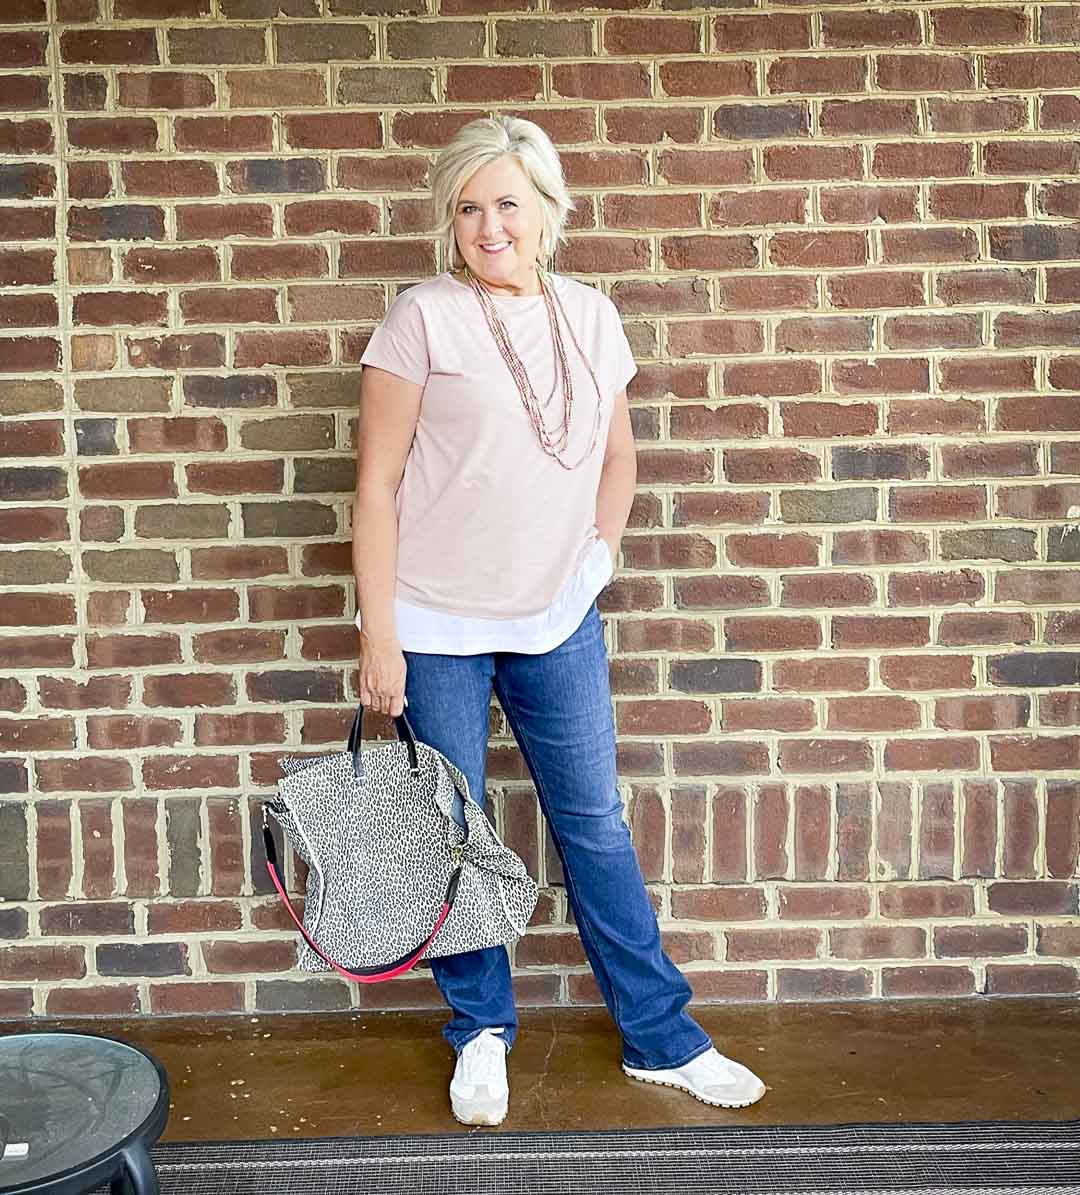 Over 40 Fashion Blogger, Tania Stephens, is wearing a blush pink, a white tank tunic, bootcut jeans, and carrying a suede animal print tote